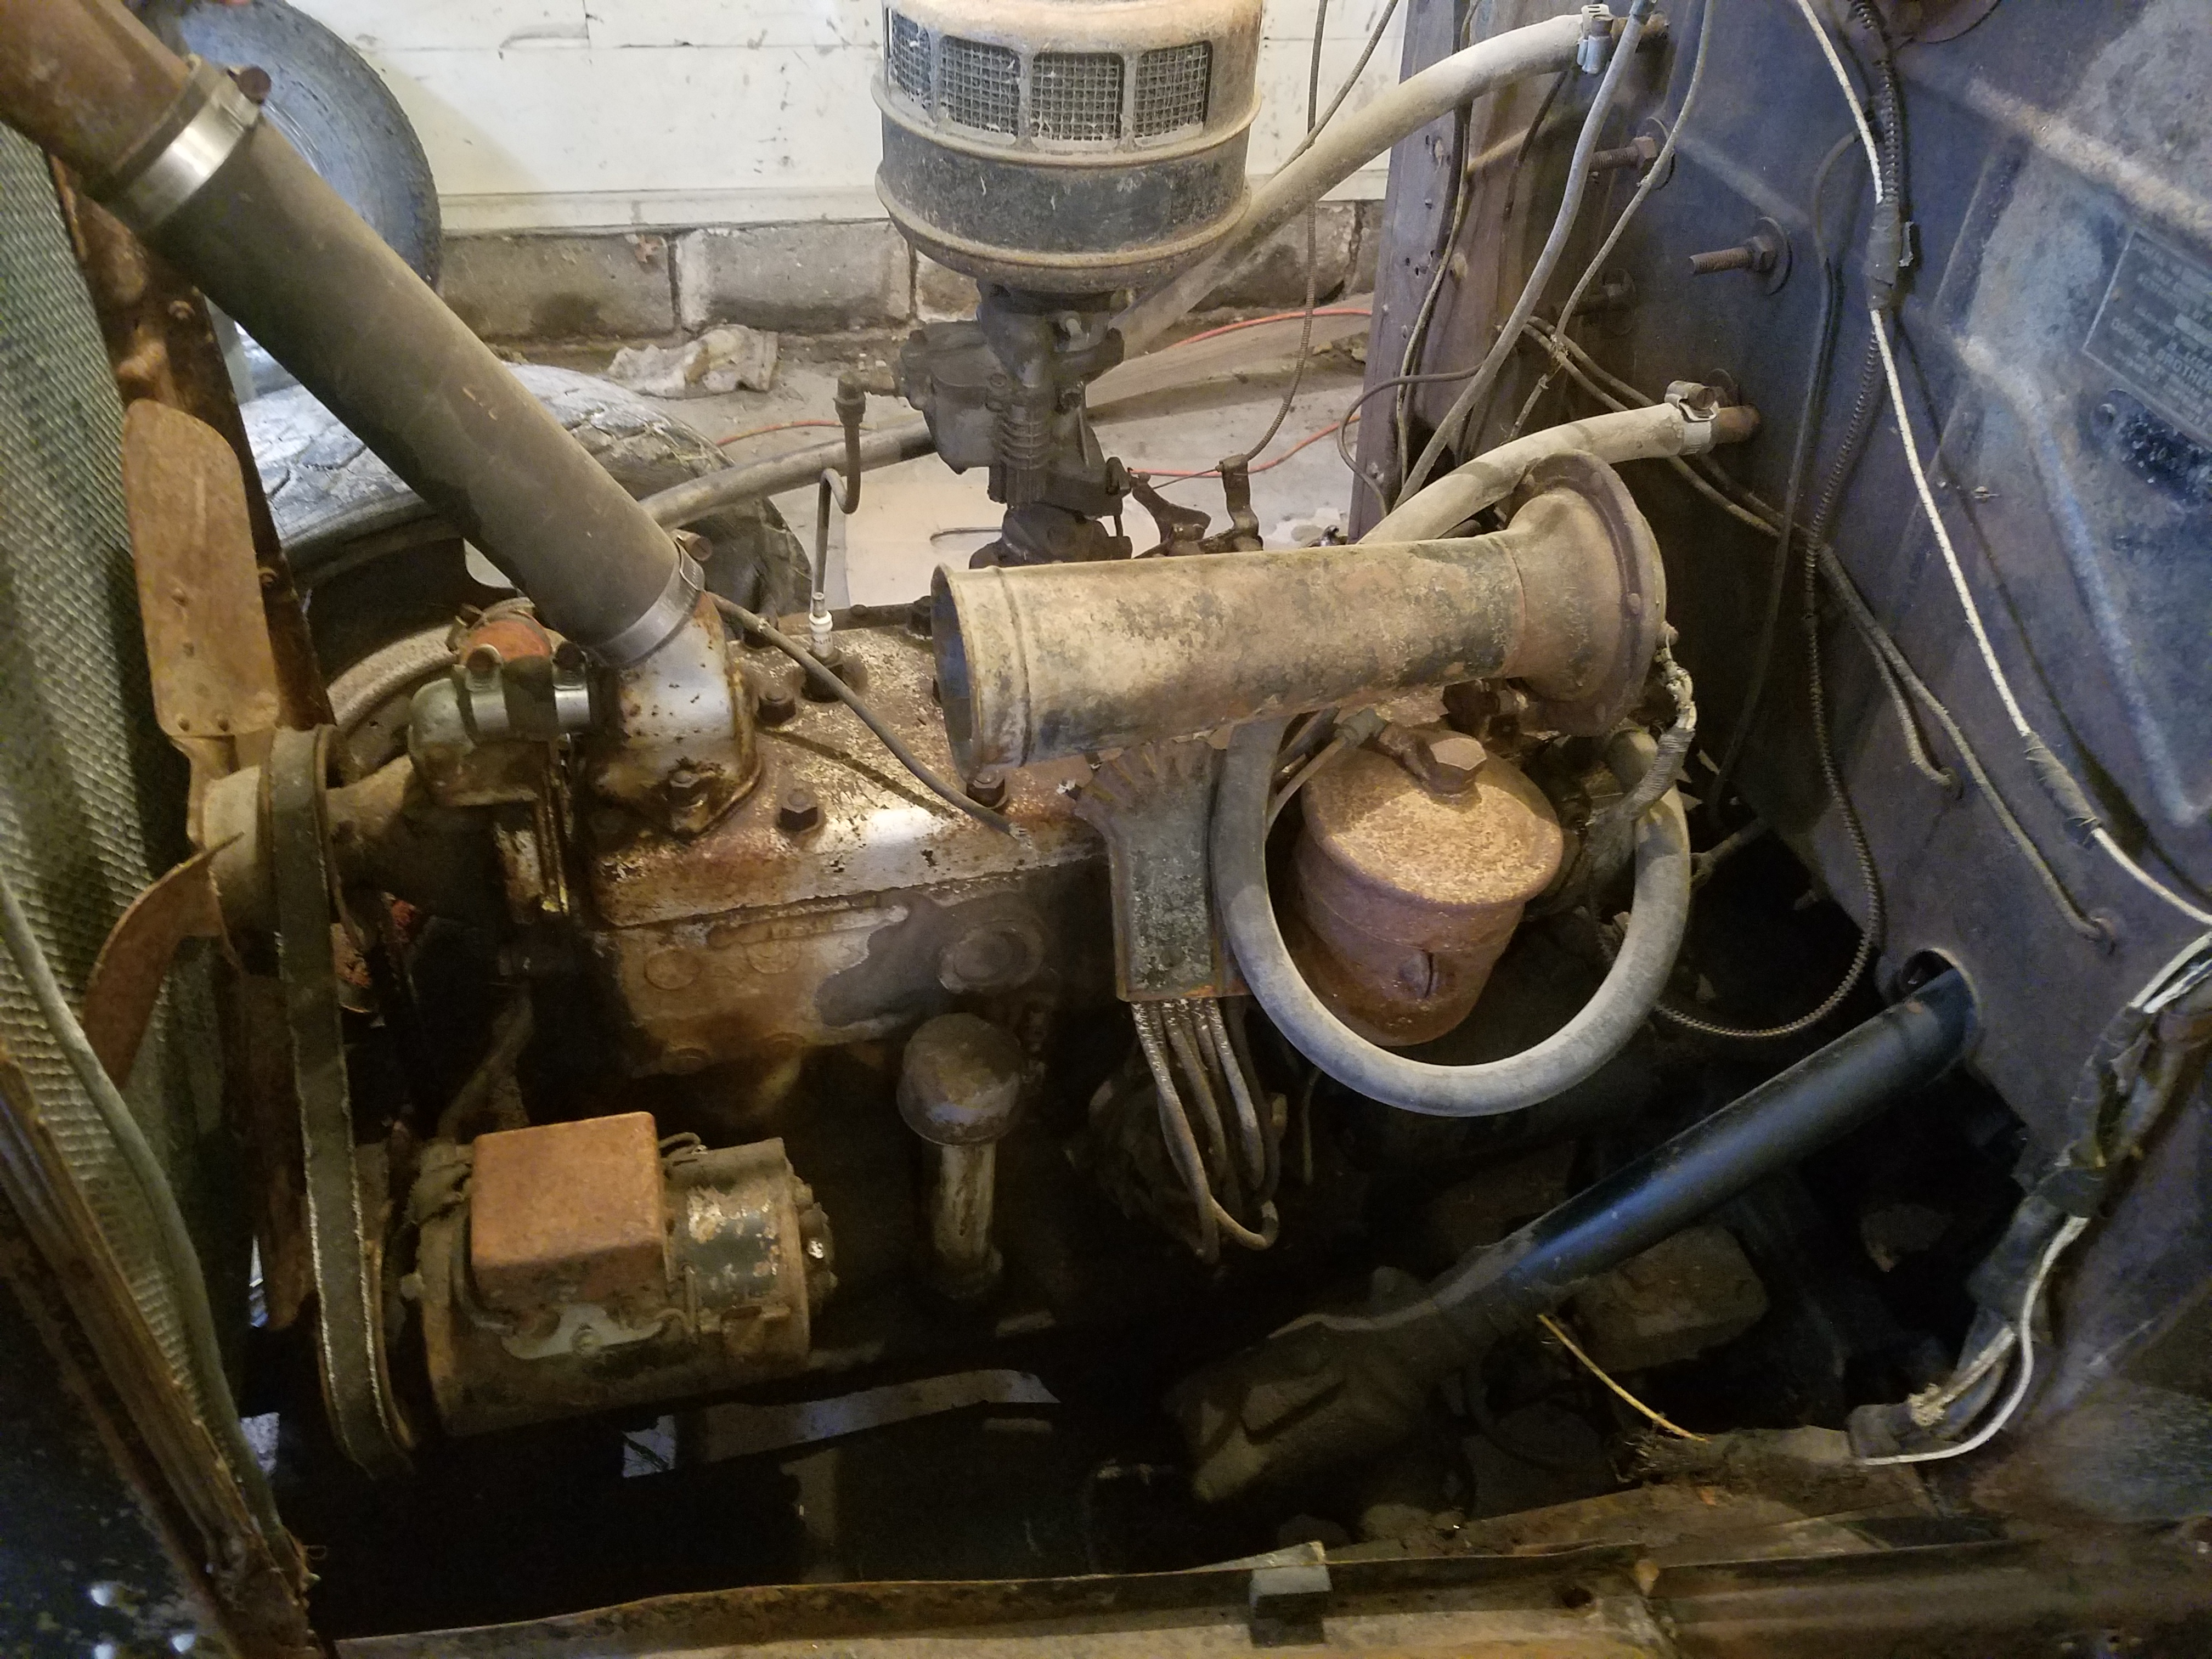 For Sale 1934 Dodge/Plymouth flathead 6 cylinder & tranny